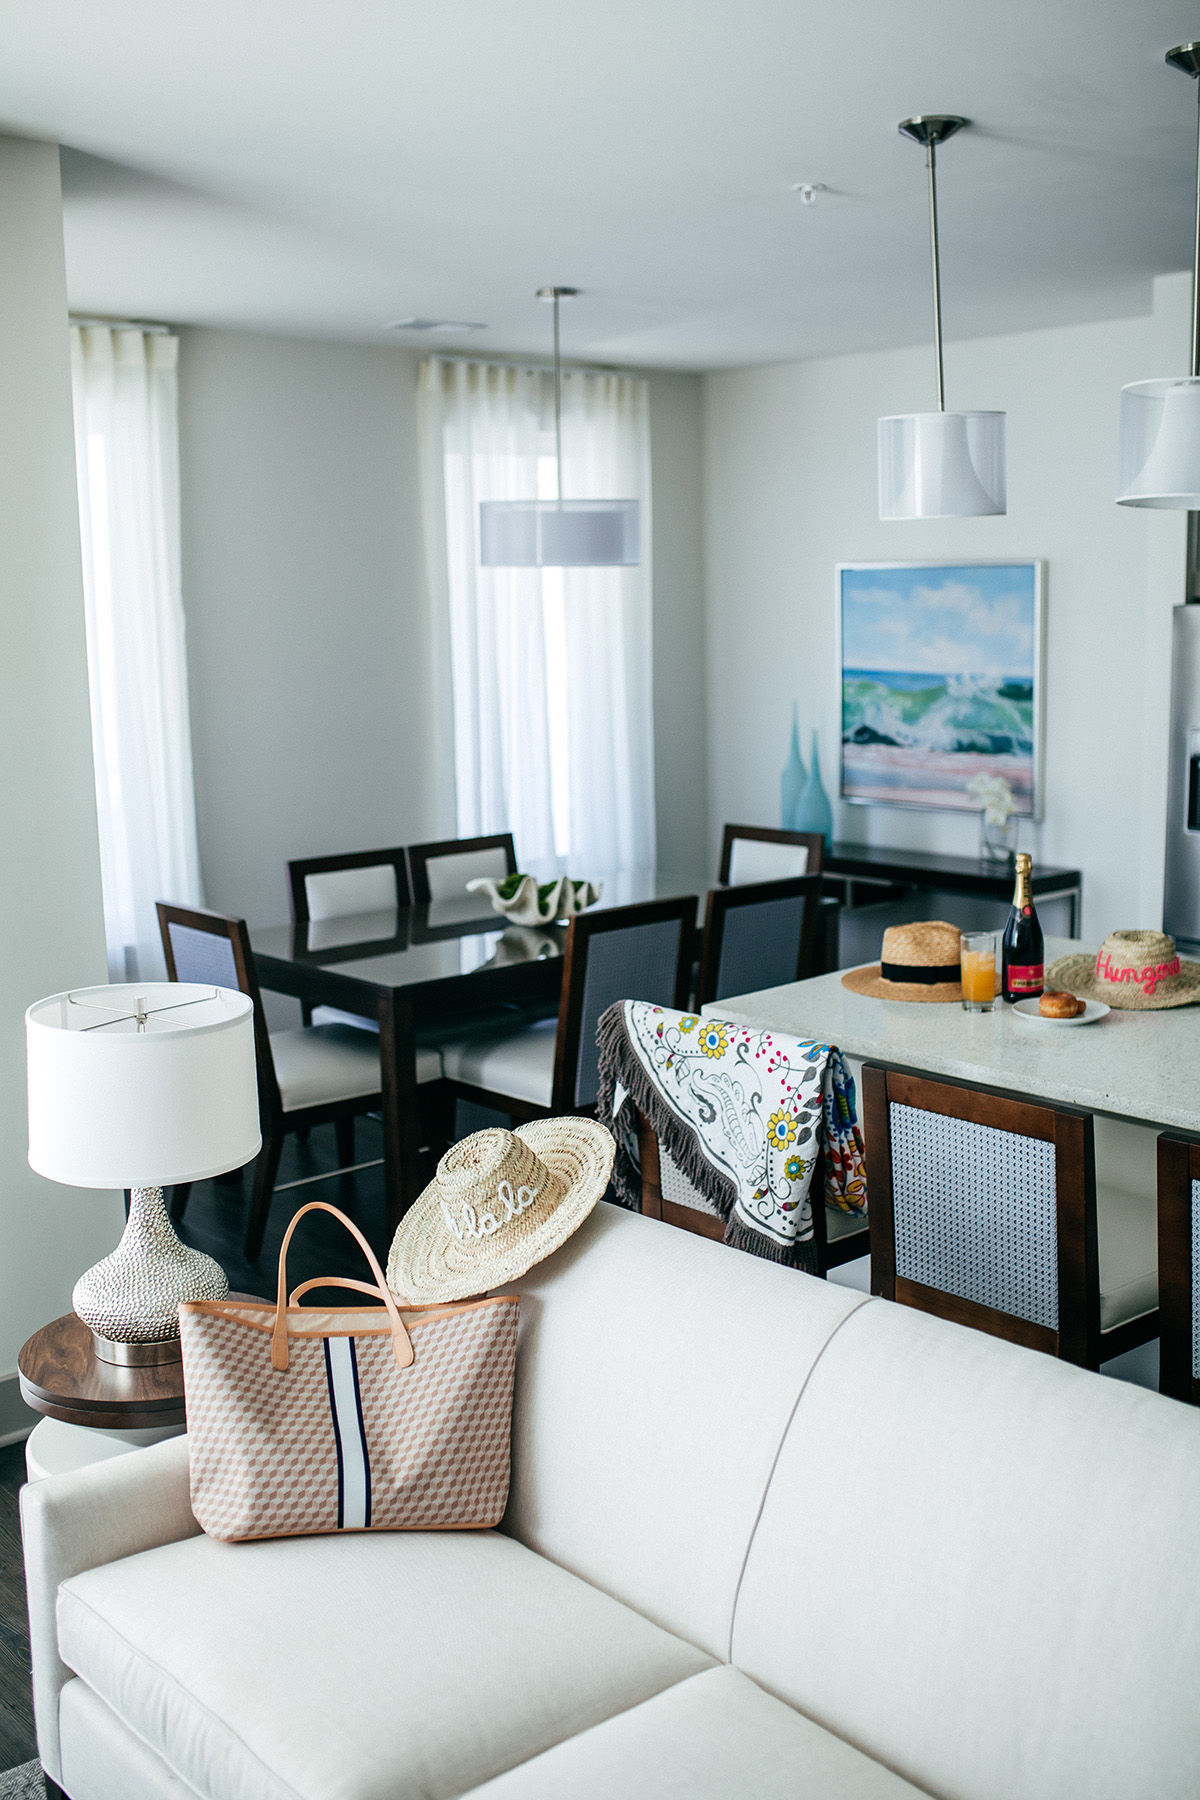 30A Beach Trip Recap | Where to Stay on 30A